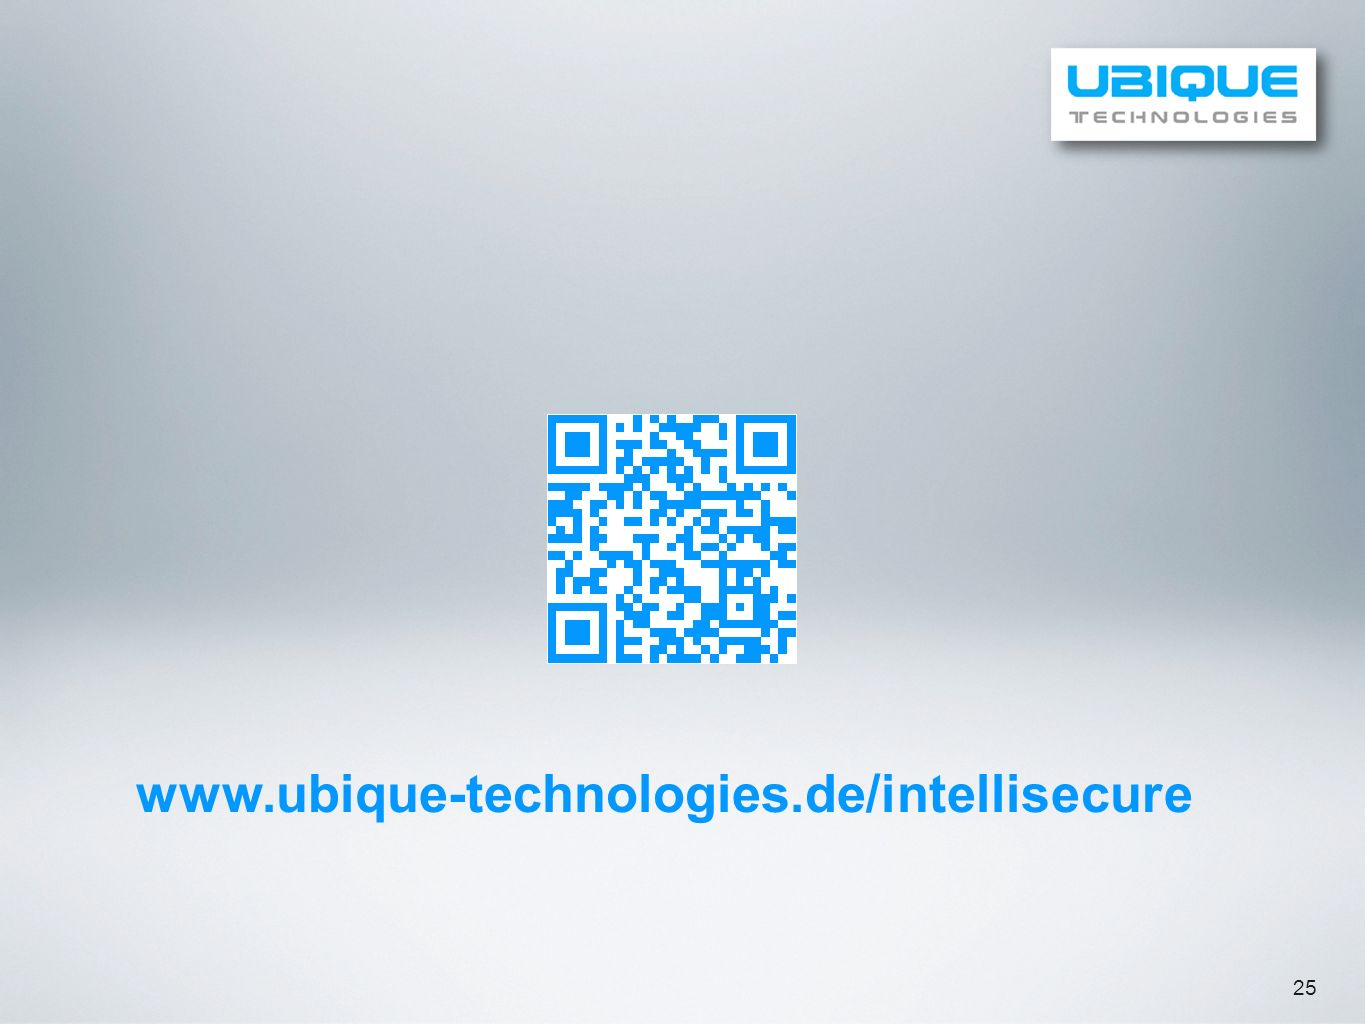 www.ubique-technologies.de/intellisecure 25